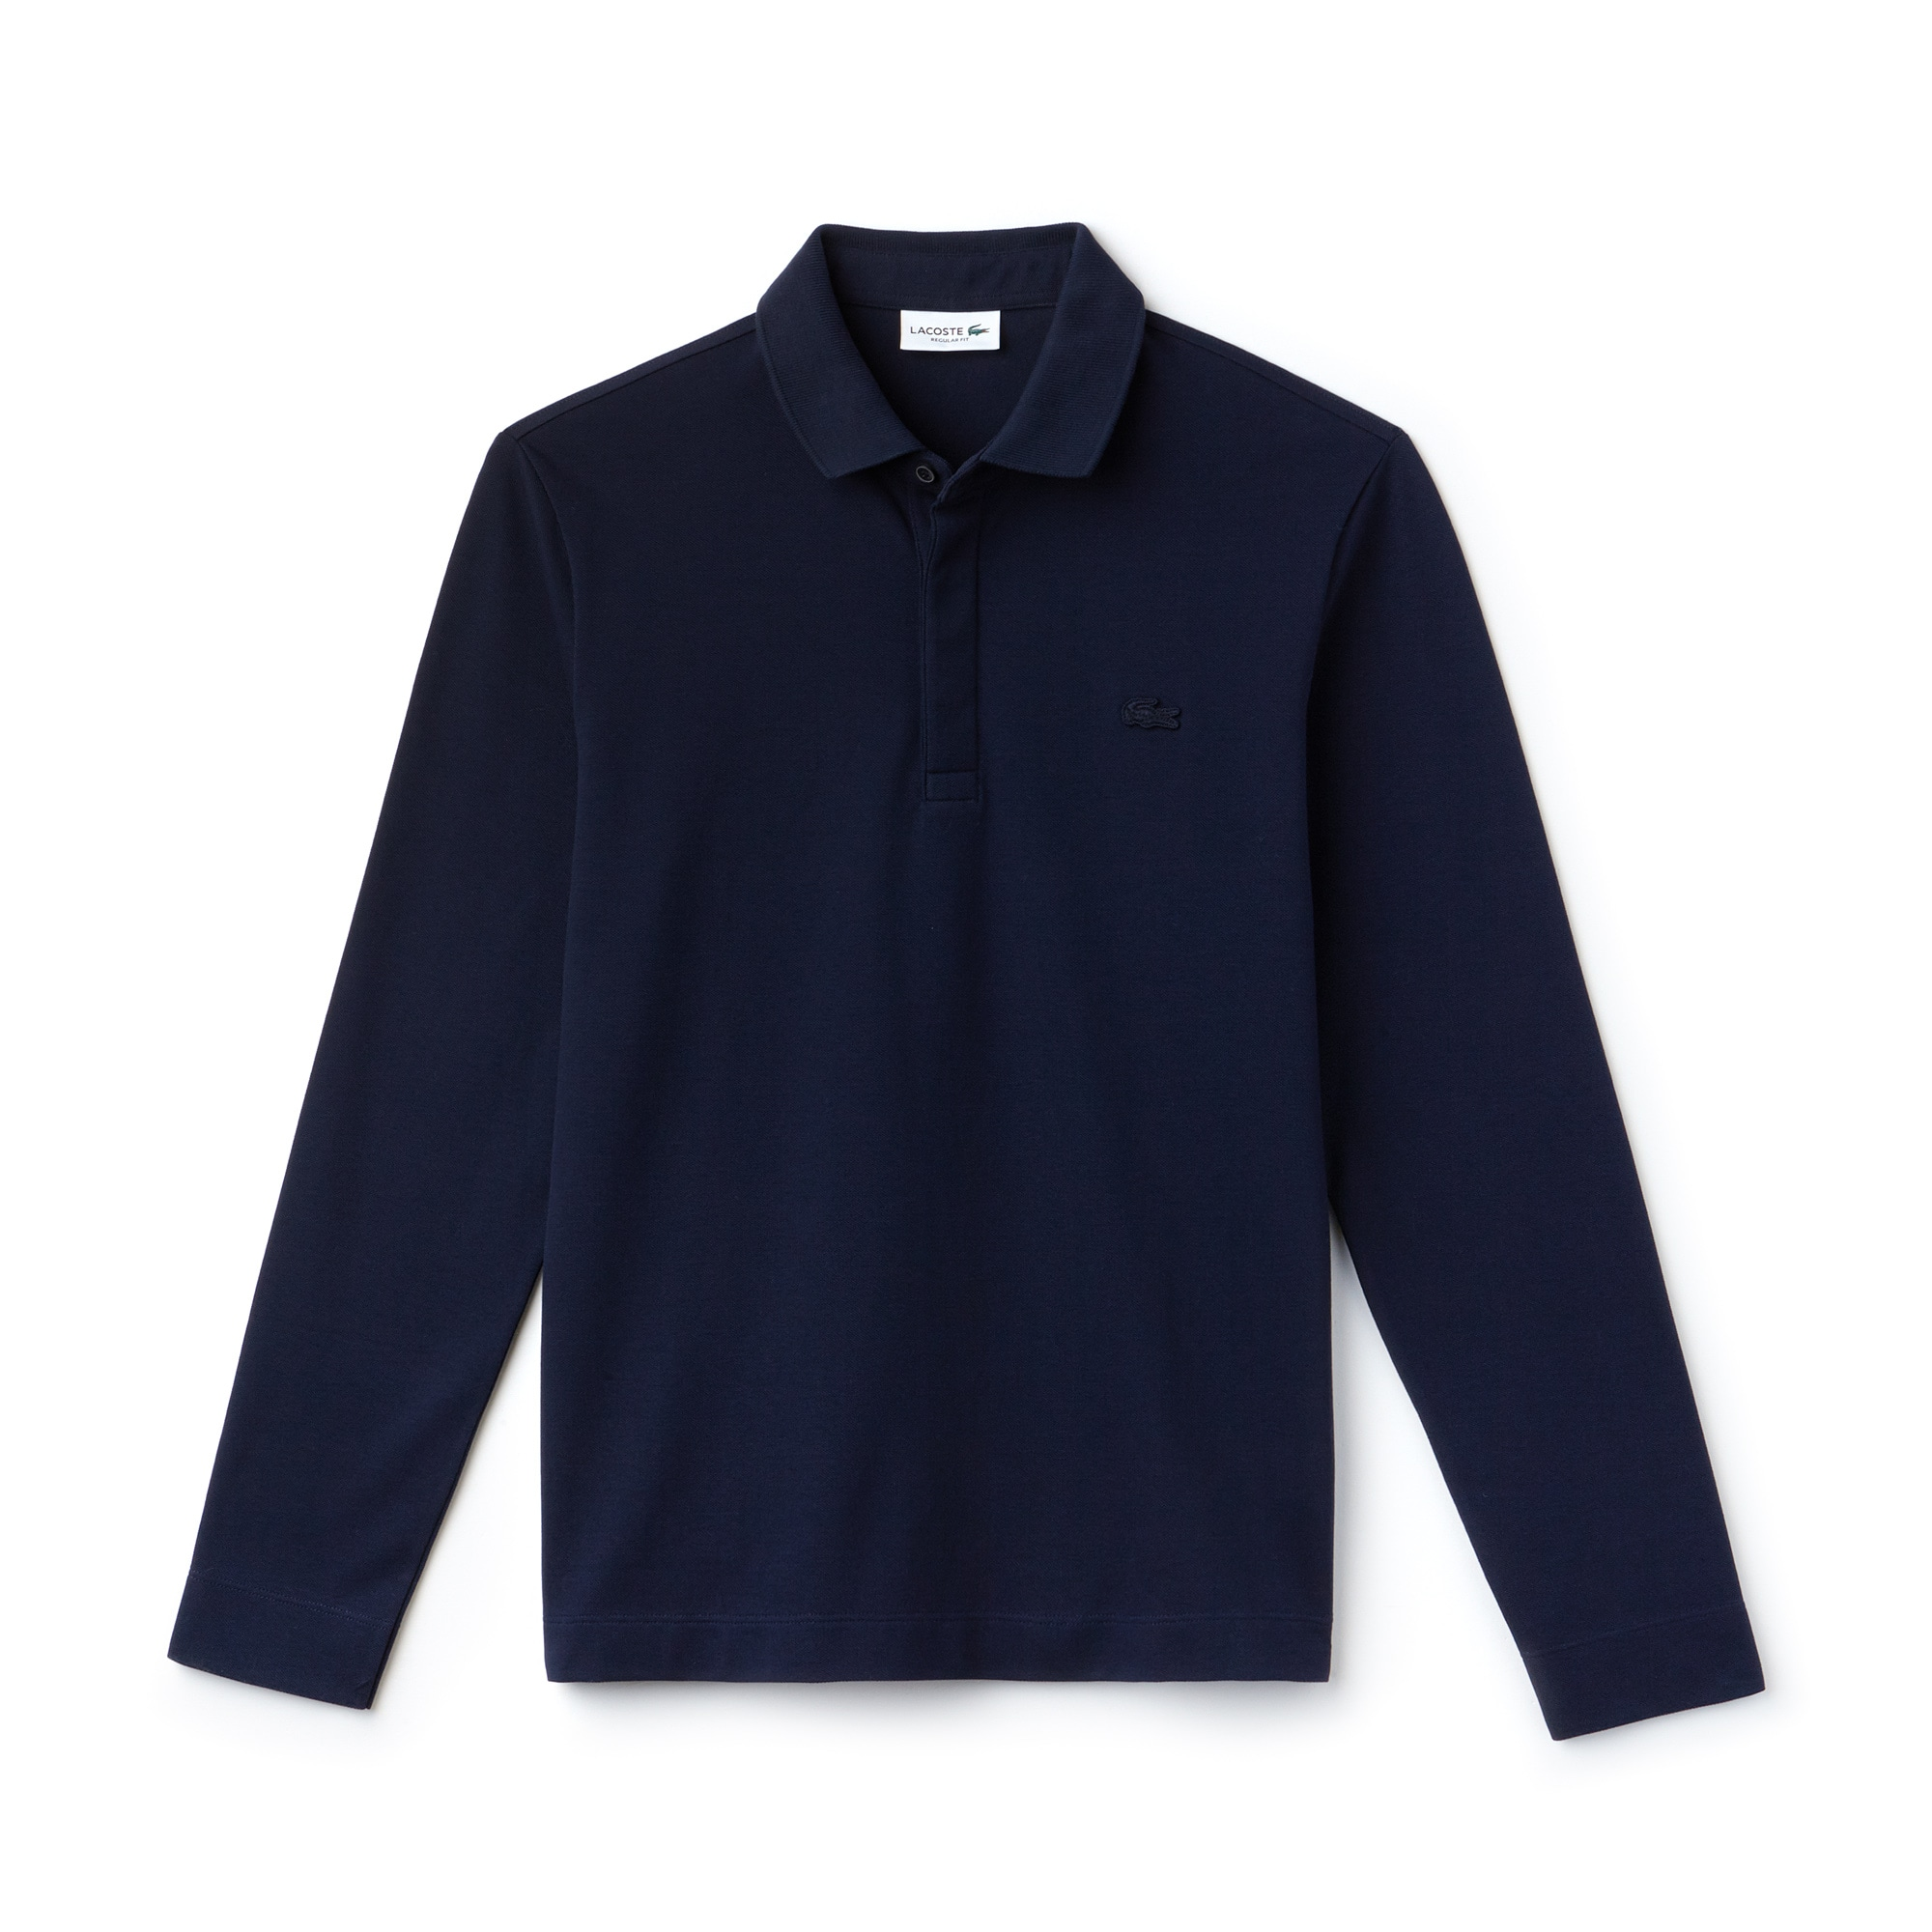 Men's Long-sleeve Paris Polo Regular Fit Stretch Cotton Piqué